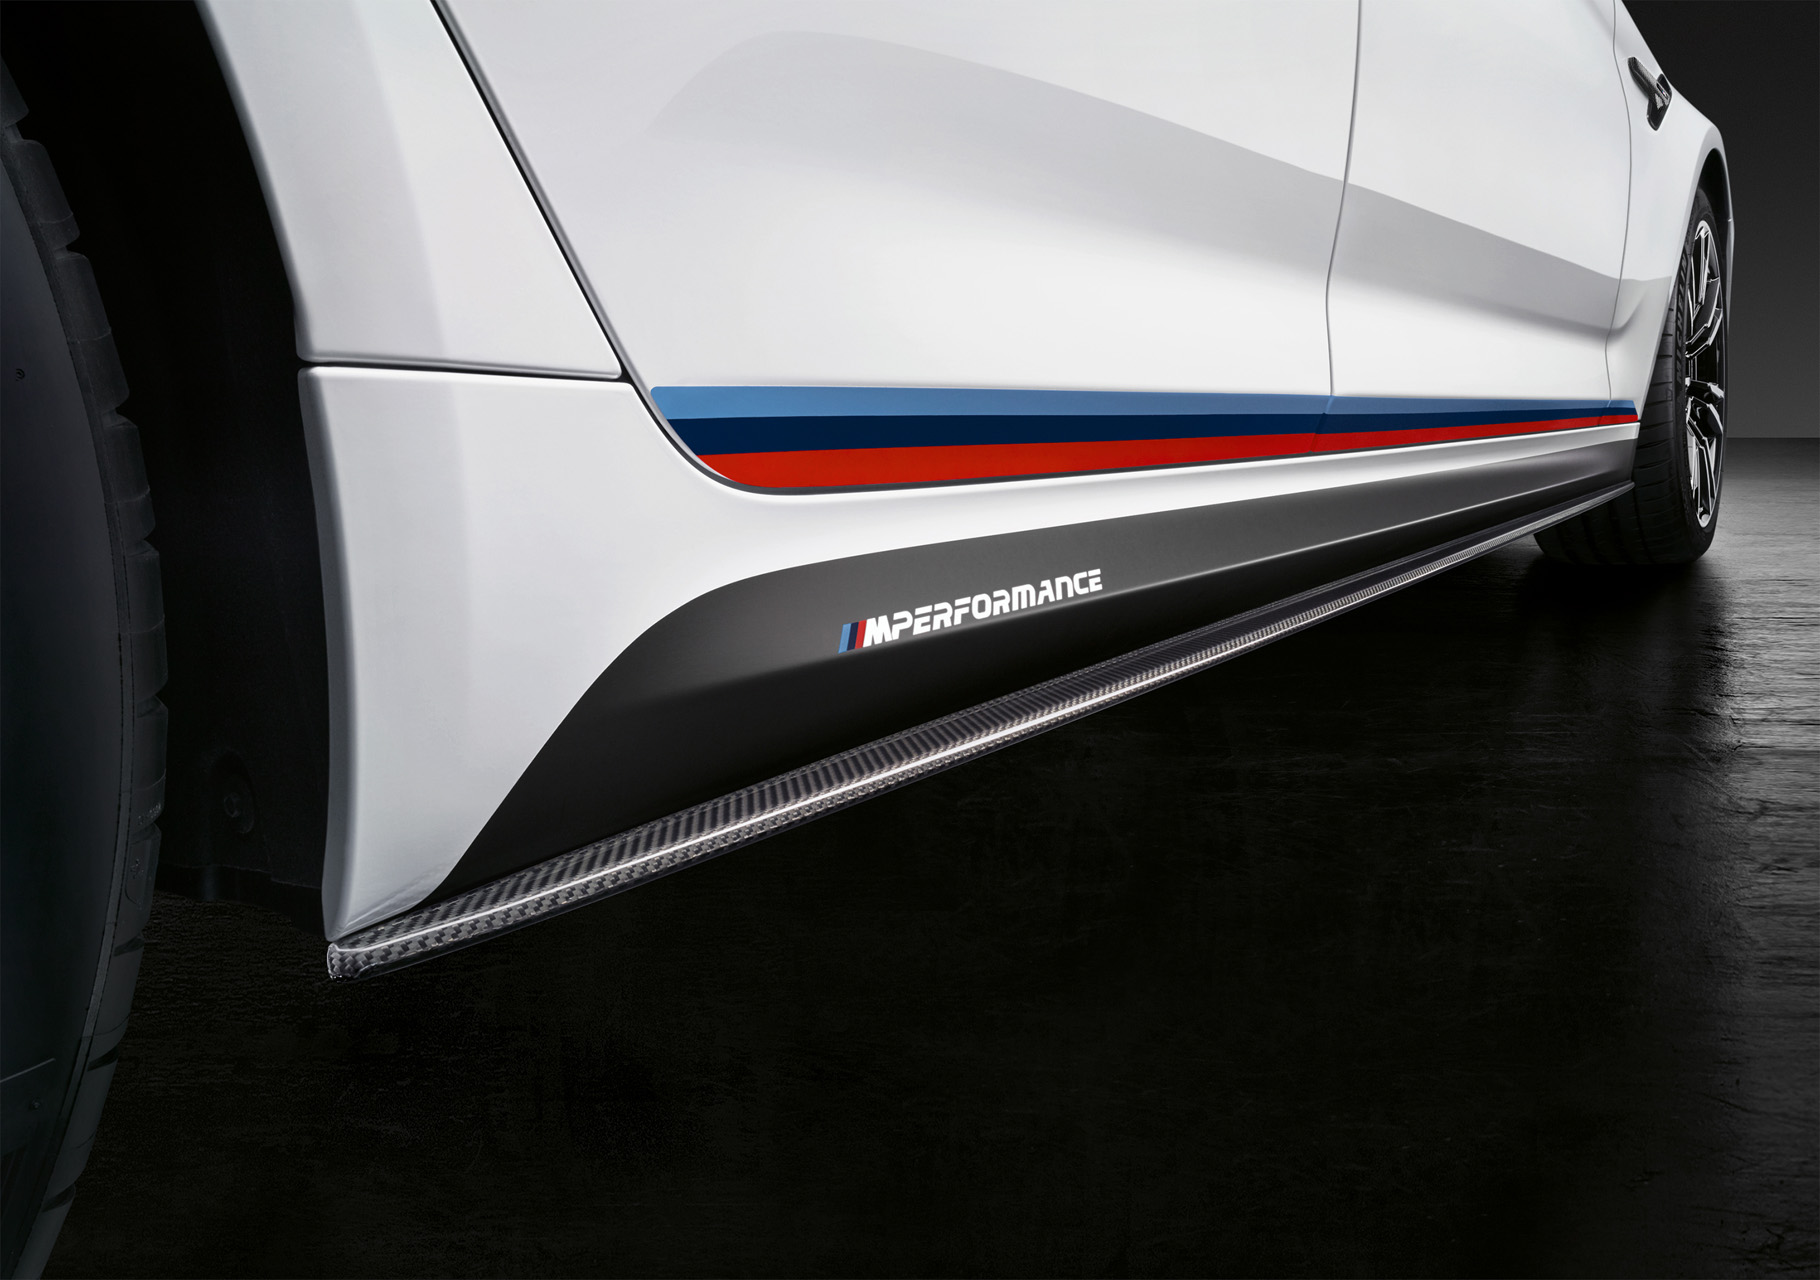 8b95e3b1e928 ... in the accessory range developed especially for the BMW M5 include the  package comprising M Performance aerodynamics components. All of these parts  are ...